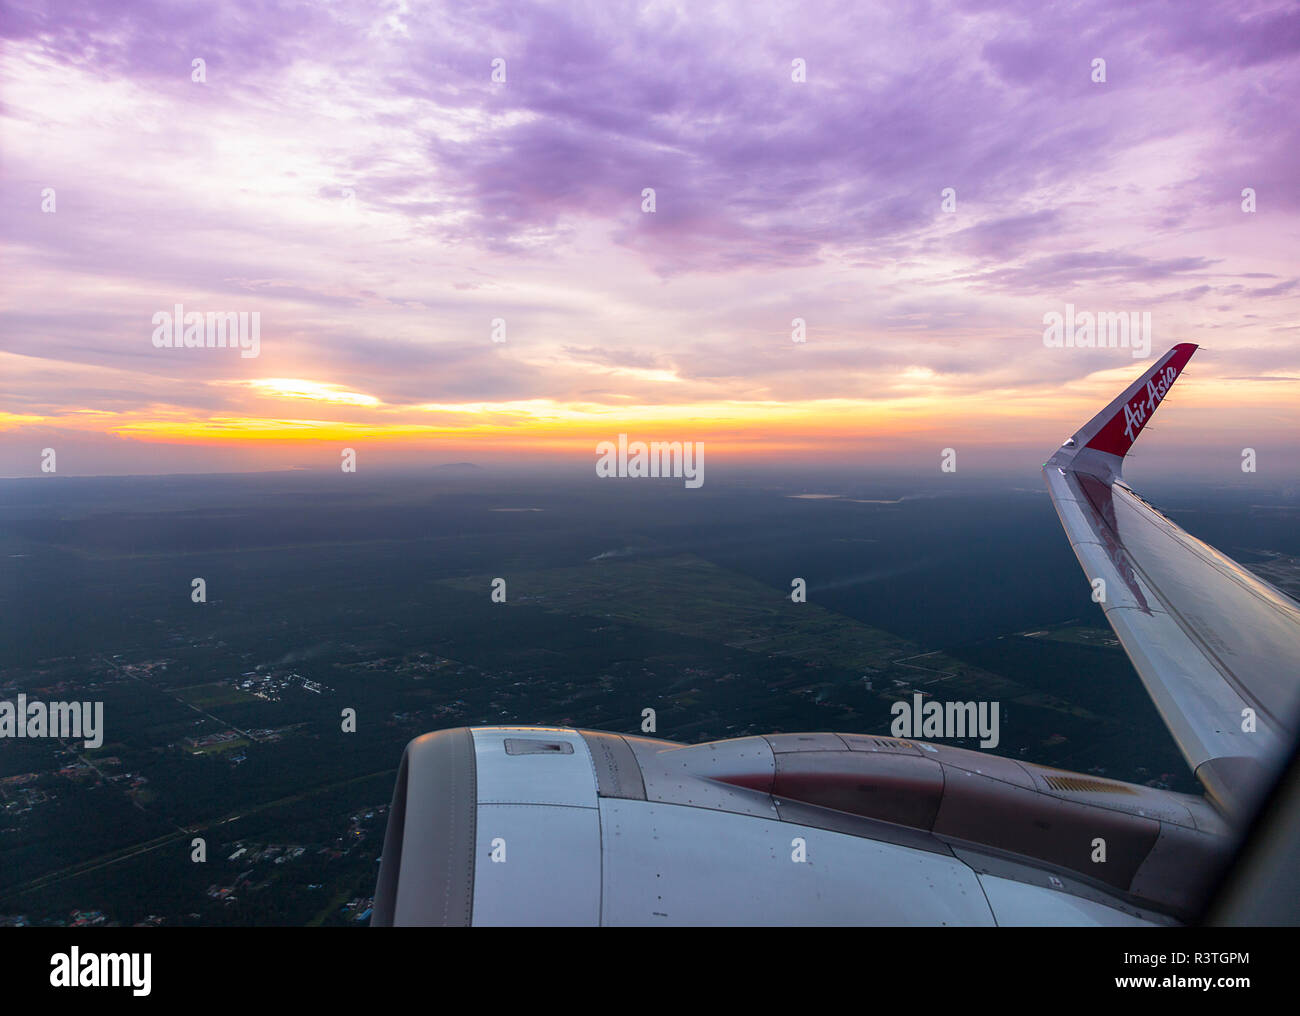 Looking out the window of a commercial airliner with the engine and wing and a purple yellow sky and sun. - Stock Image